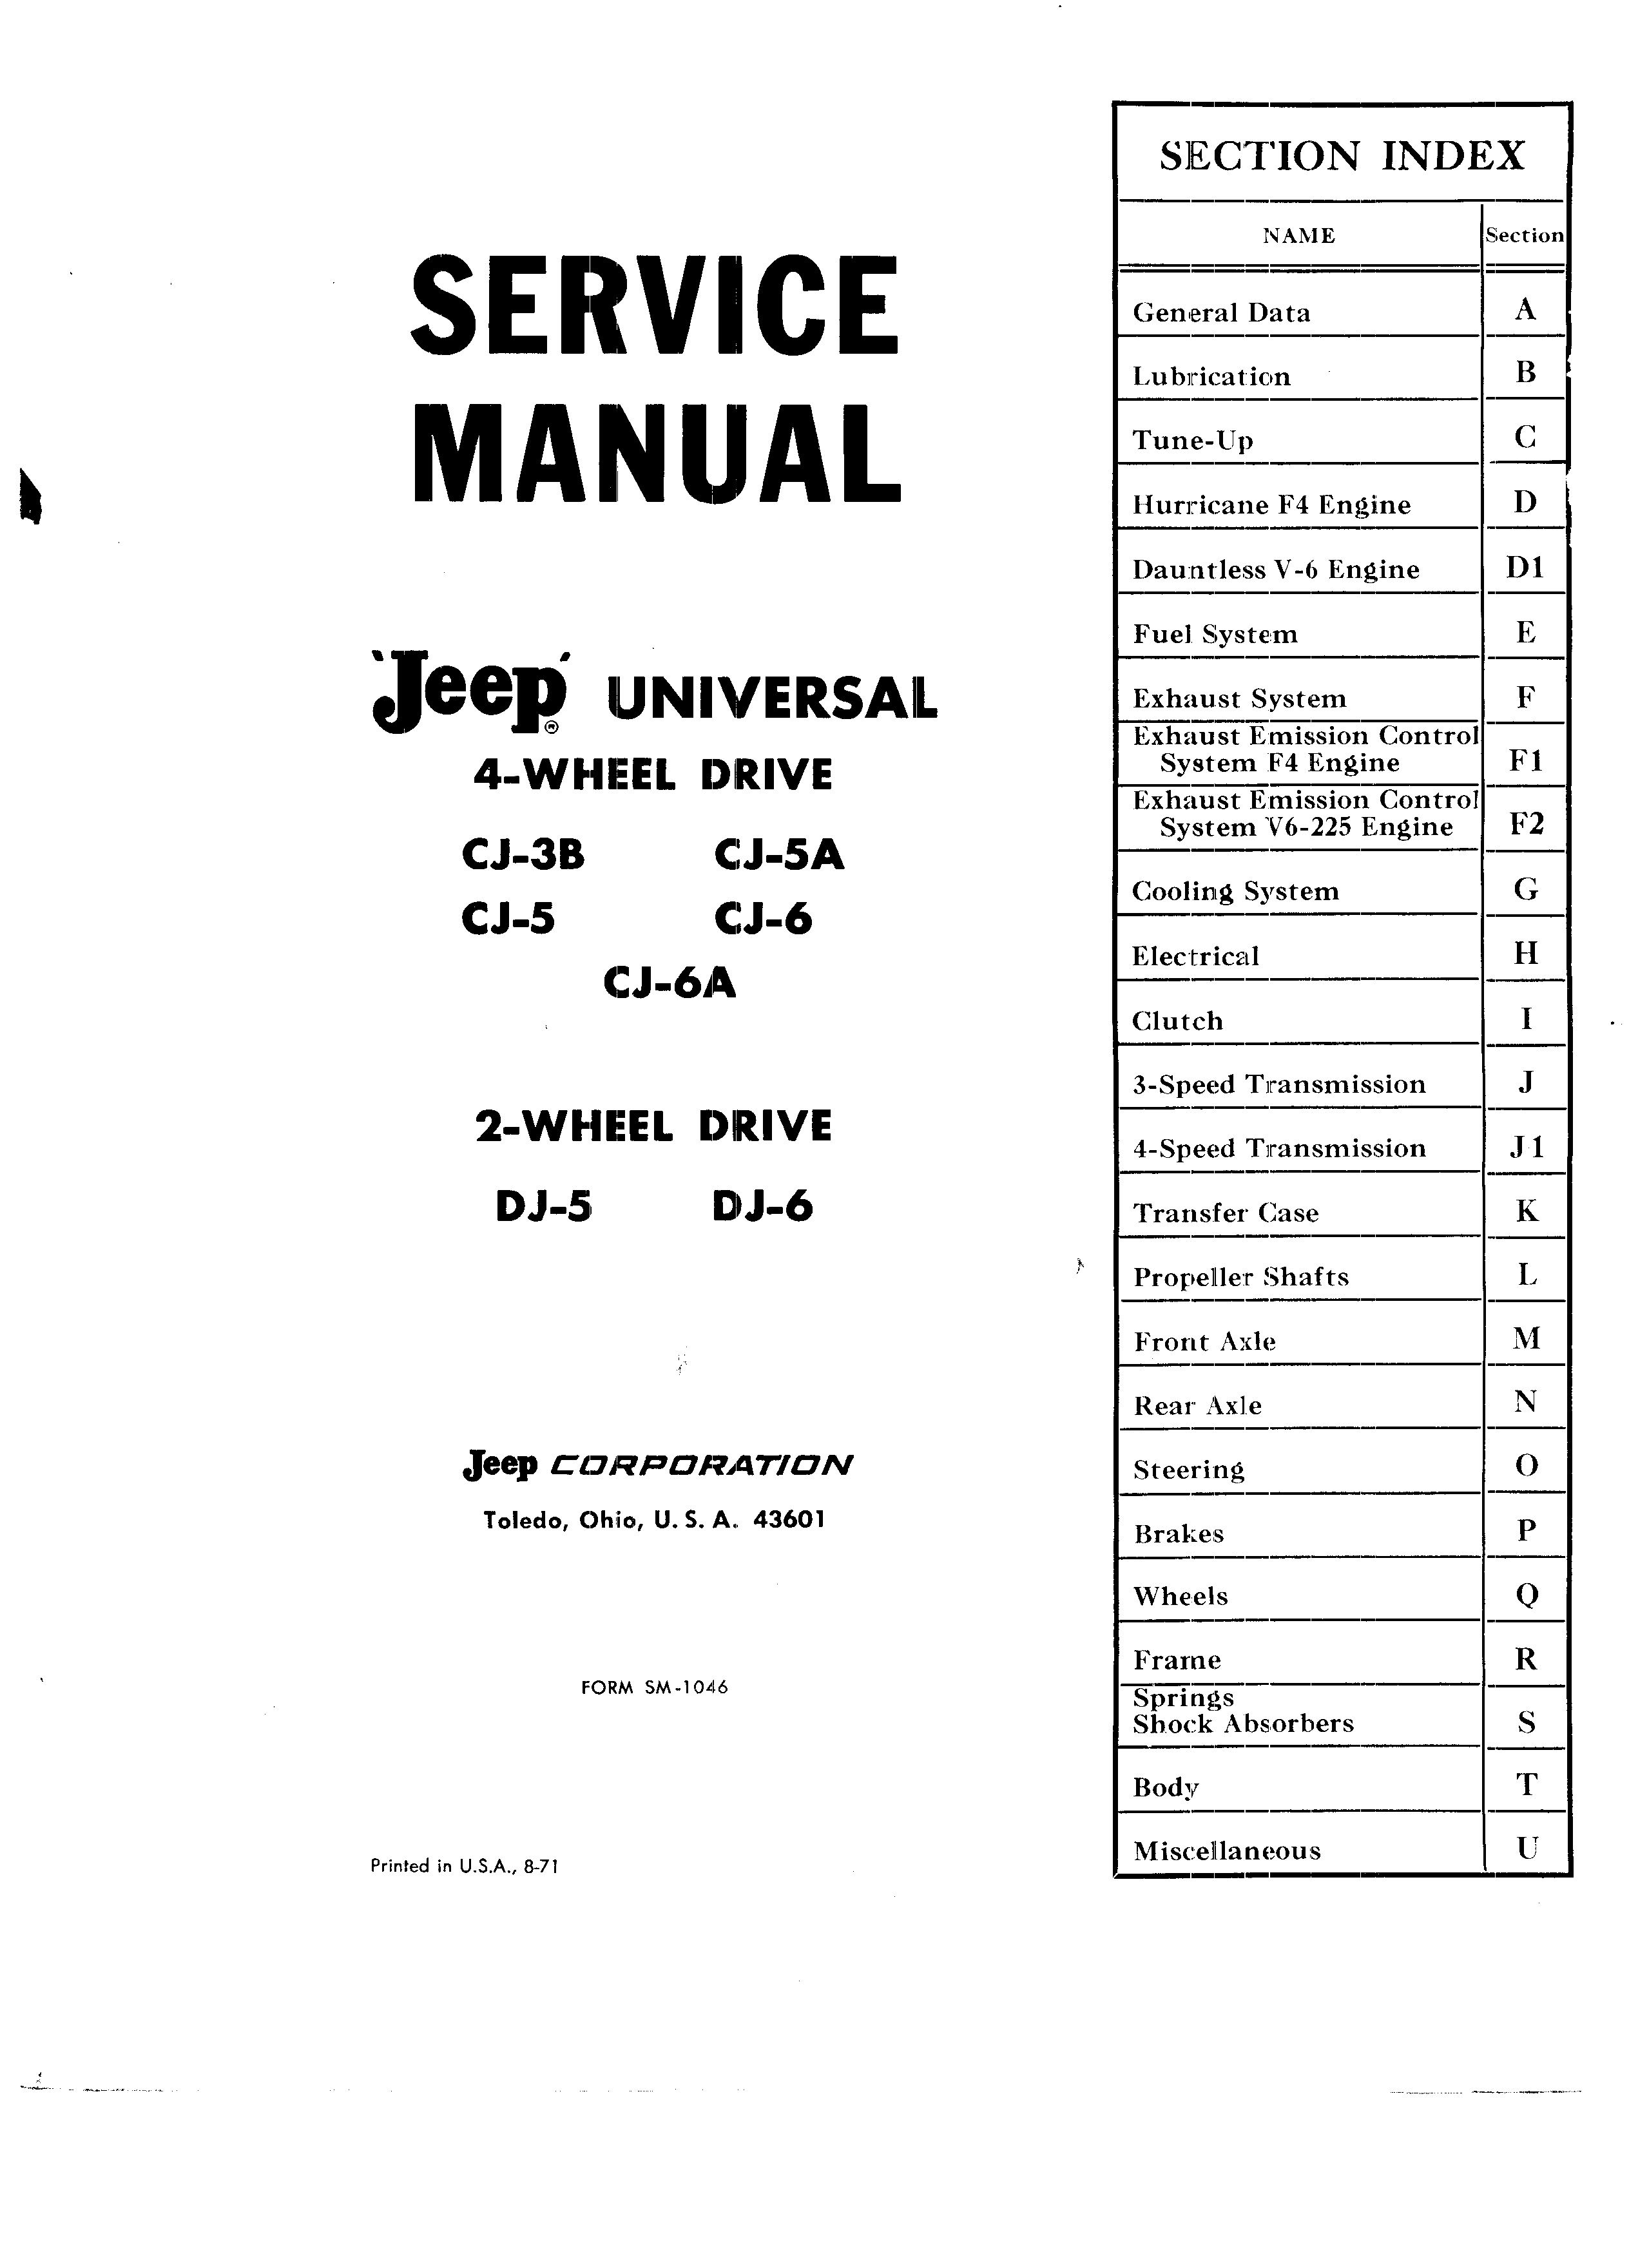 Service Manual SM-1046 August 1971